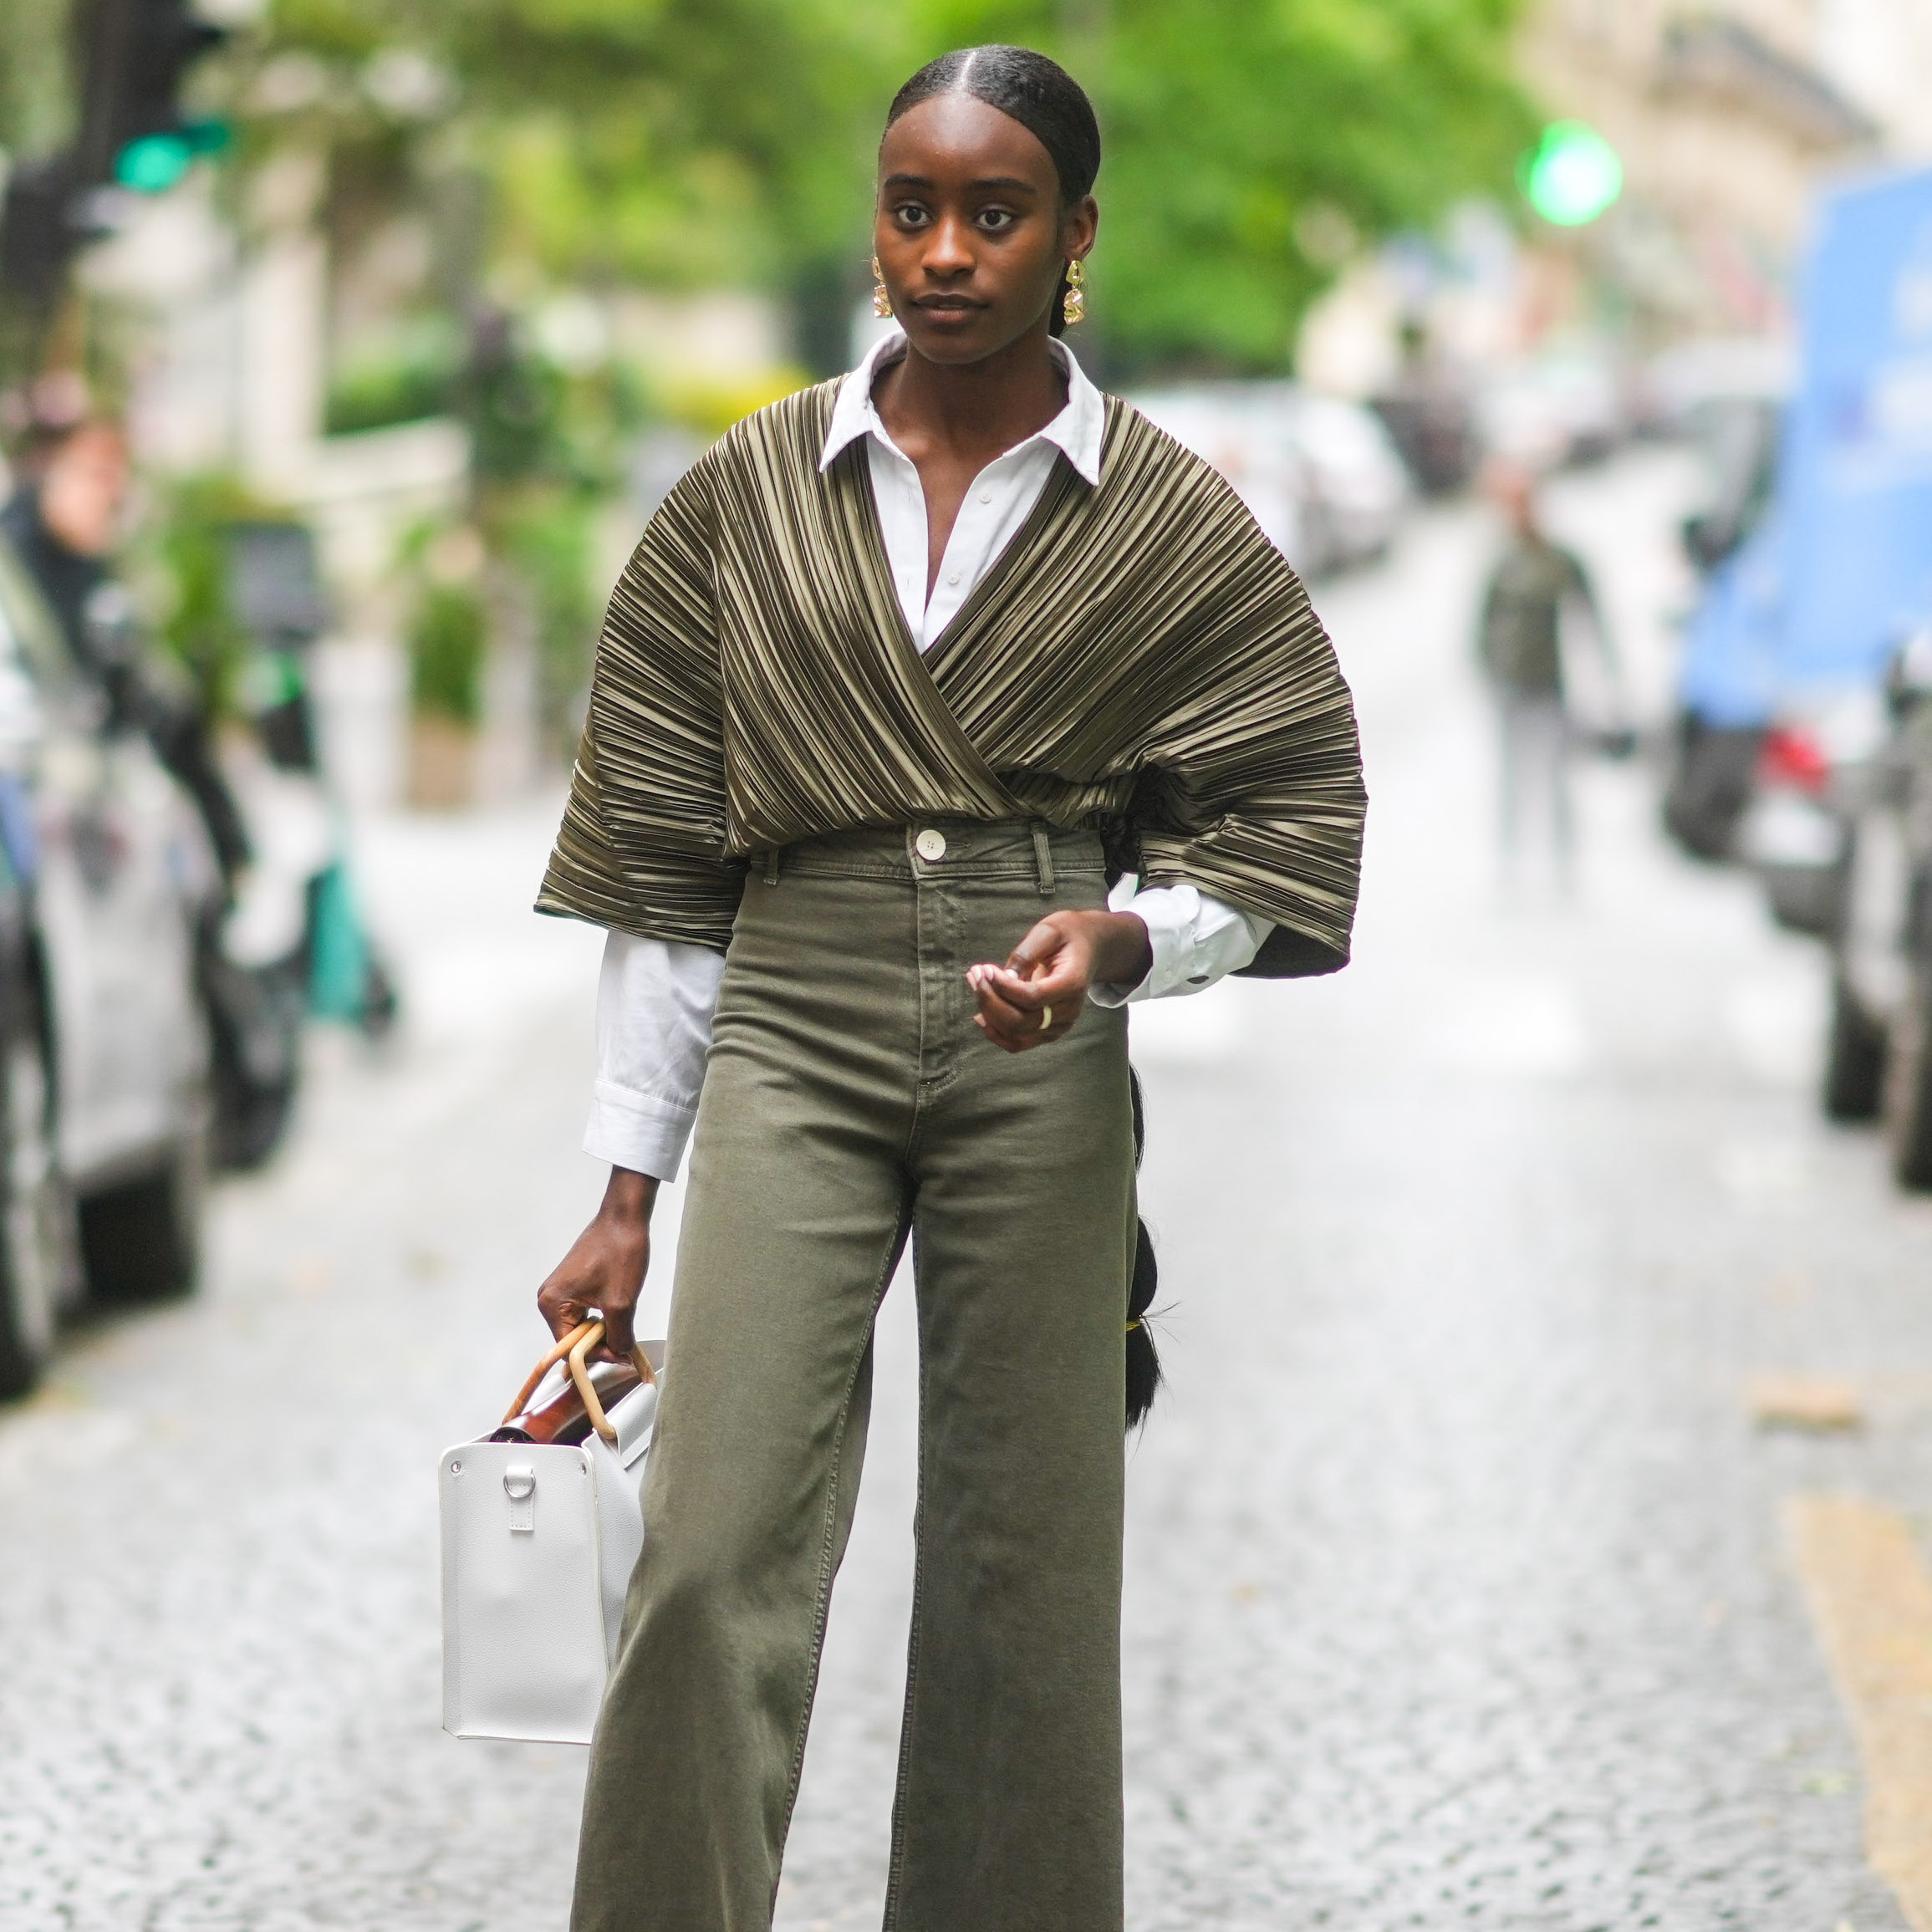 You Heard It Here First—This Sandal Trend Is Back & Cooler Than Ever